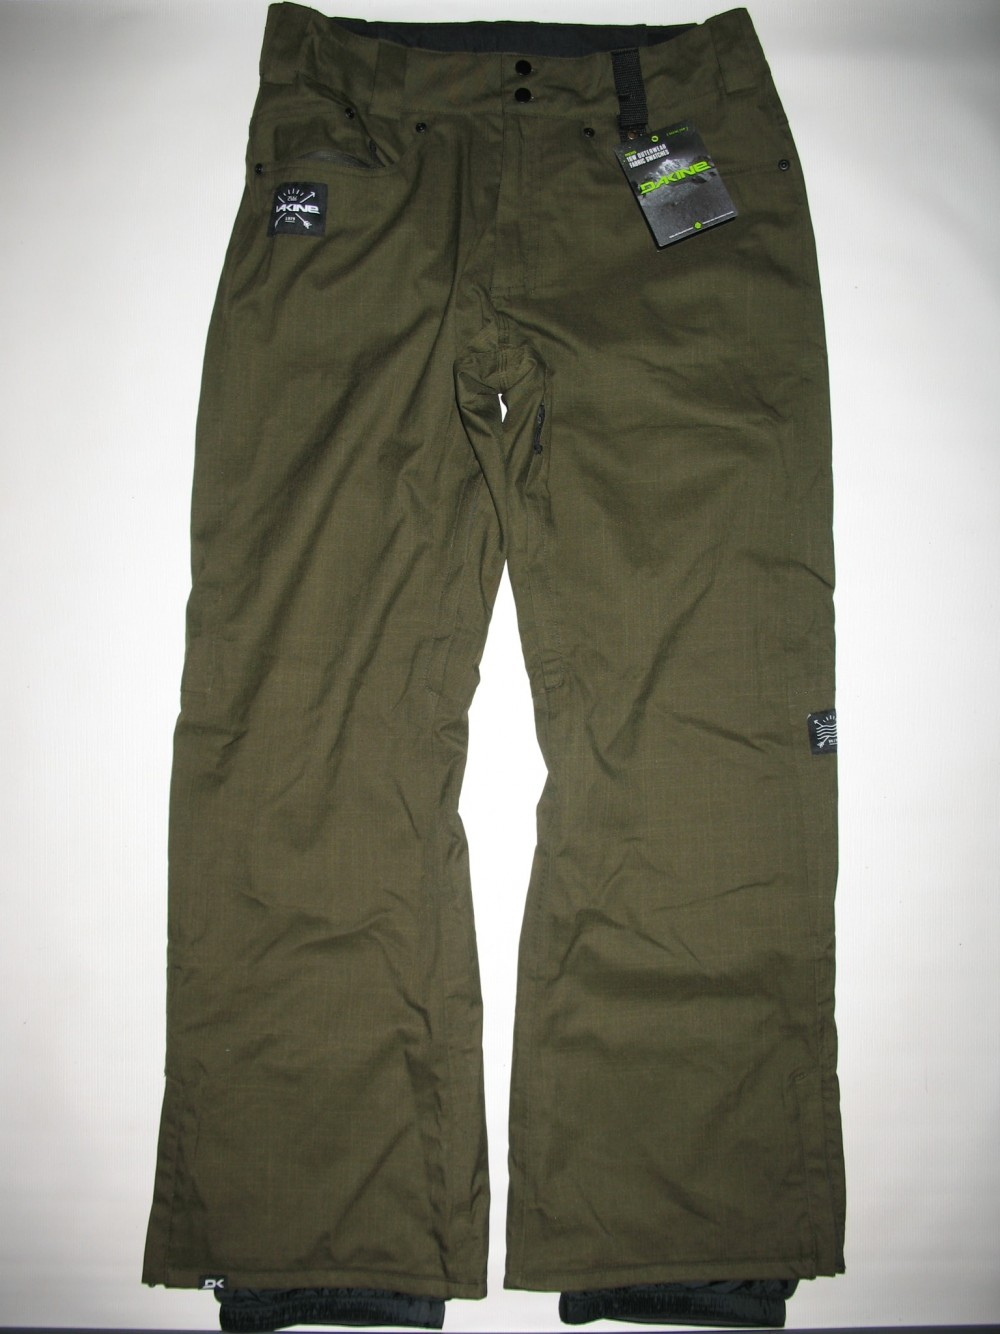 Штаны DAKINE Miner jungle ski/snowboard pants (размер L) - 1